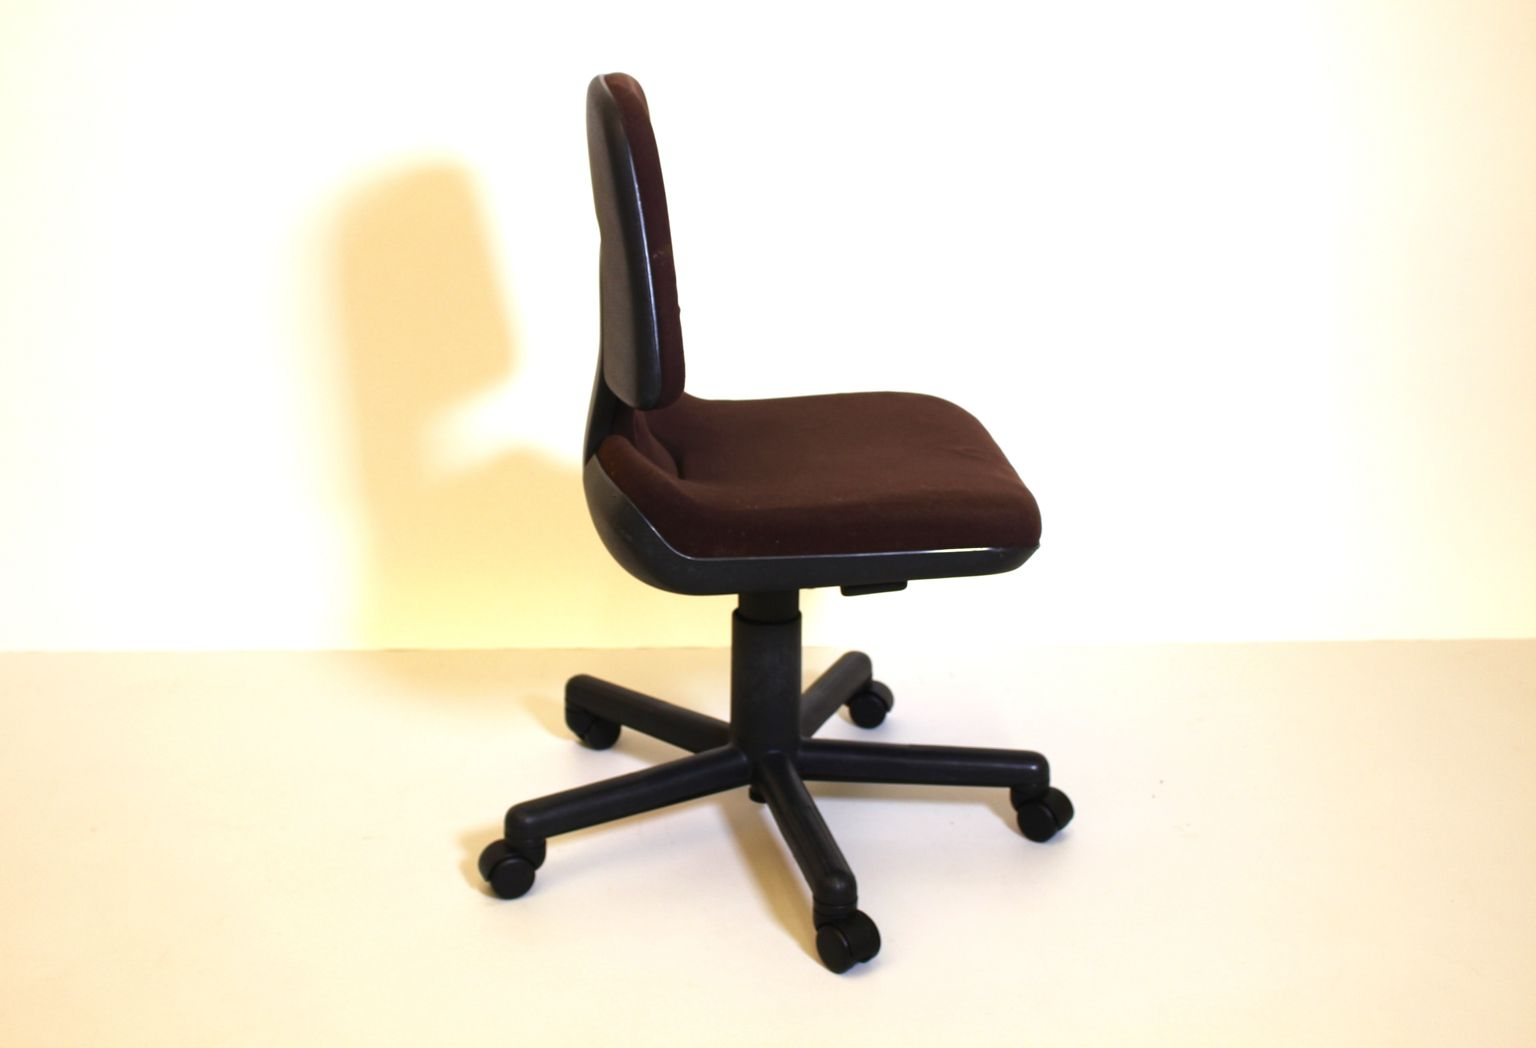 vitra office chair price wedding covers second hand vitramat by wolfgang mueller deisig for